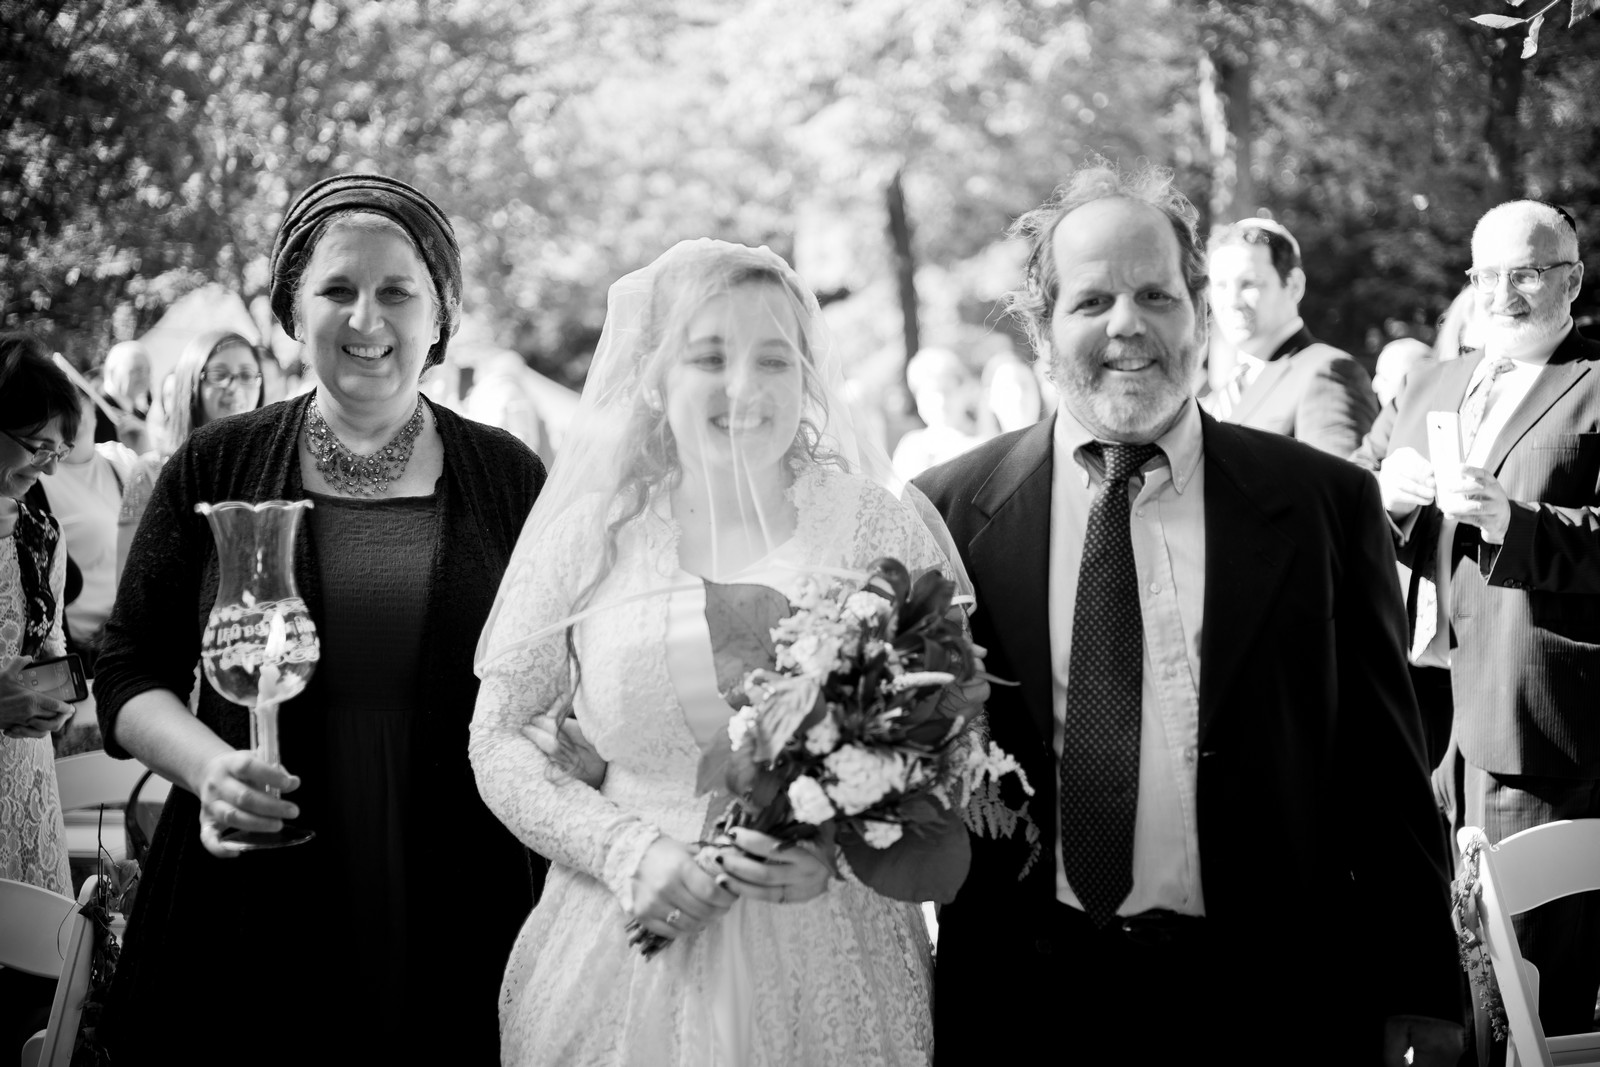 Ma'ayan and Mikey's Traditional Jewish Backyard Wedding in Fairfield, CT Photos by Chaim Schvarcz